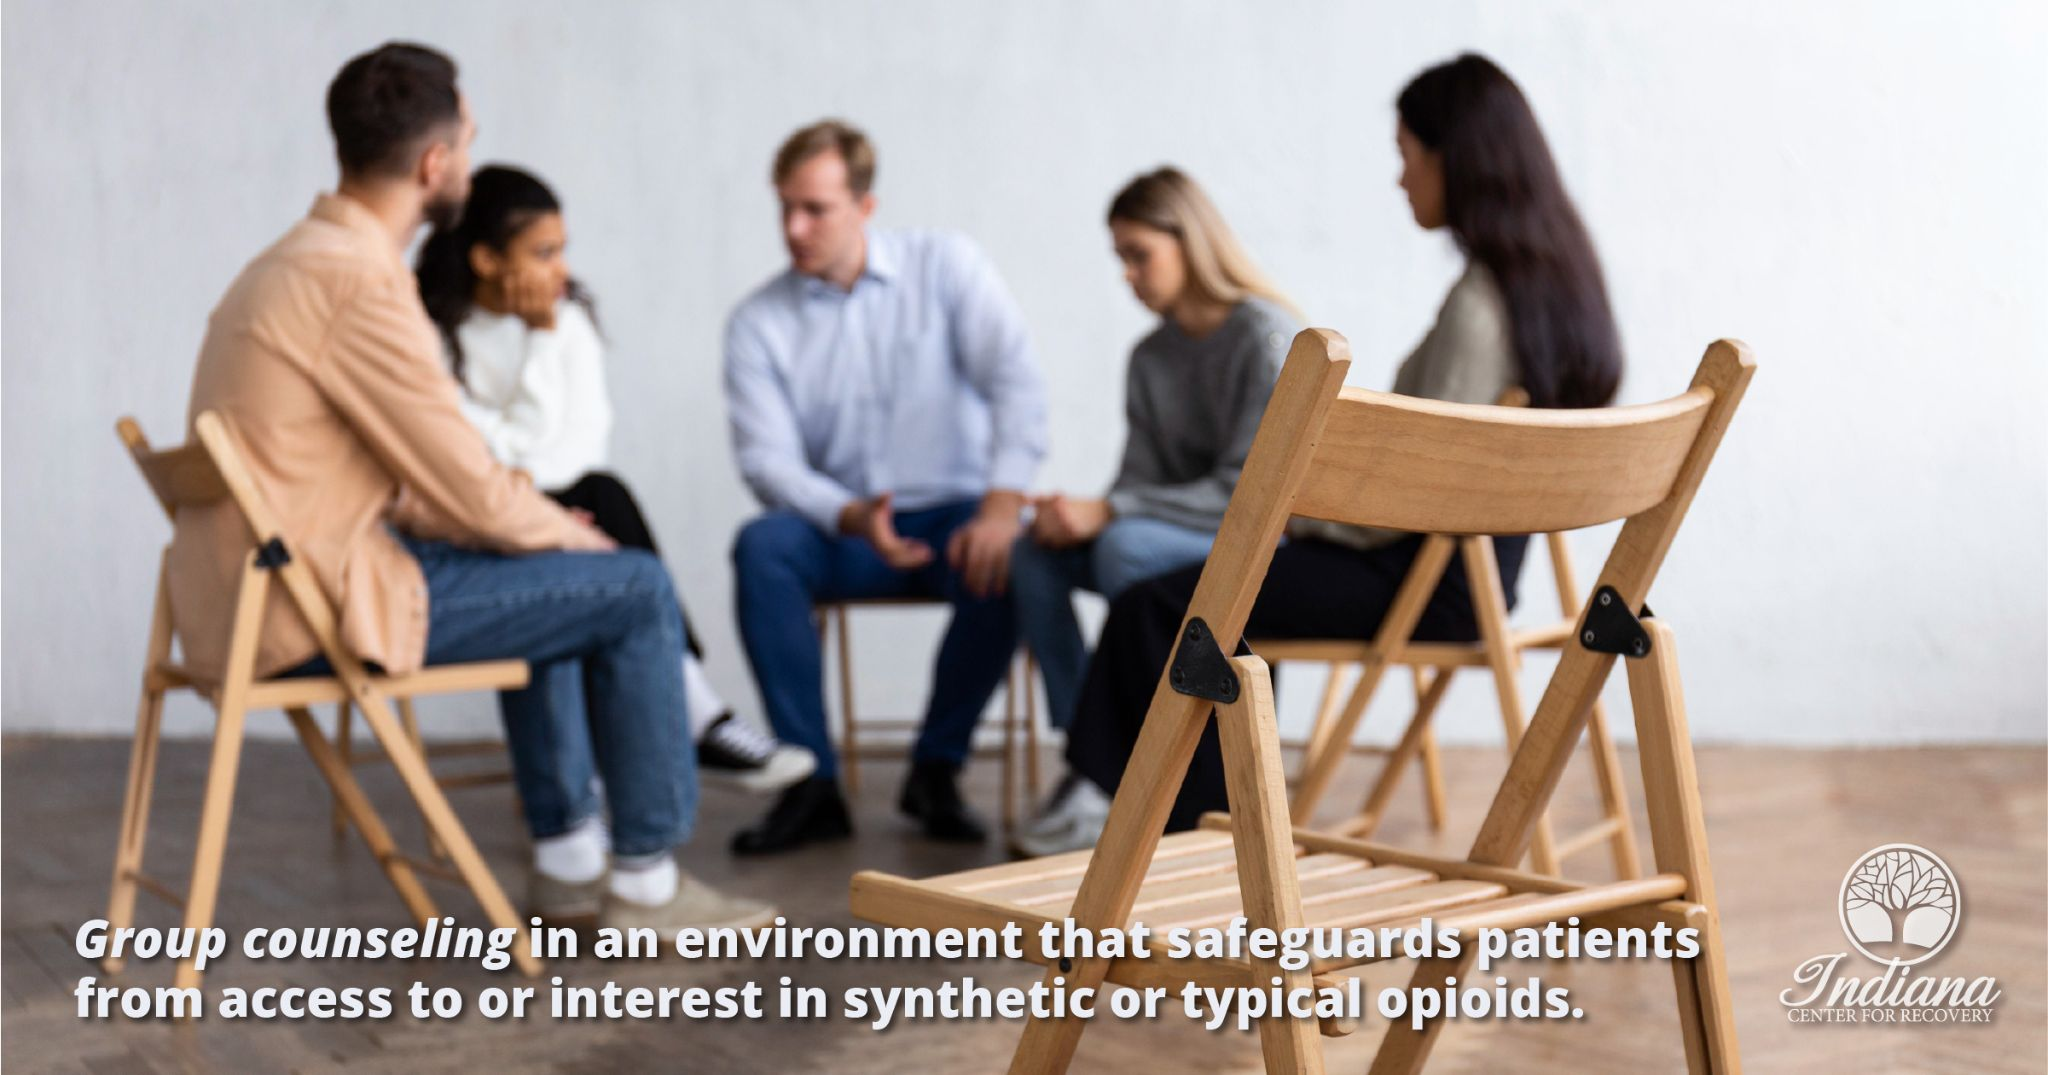 group counseling in an environment that safeguards patients from access to or interest in synthetic or typical opioids